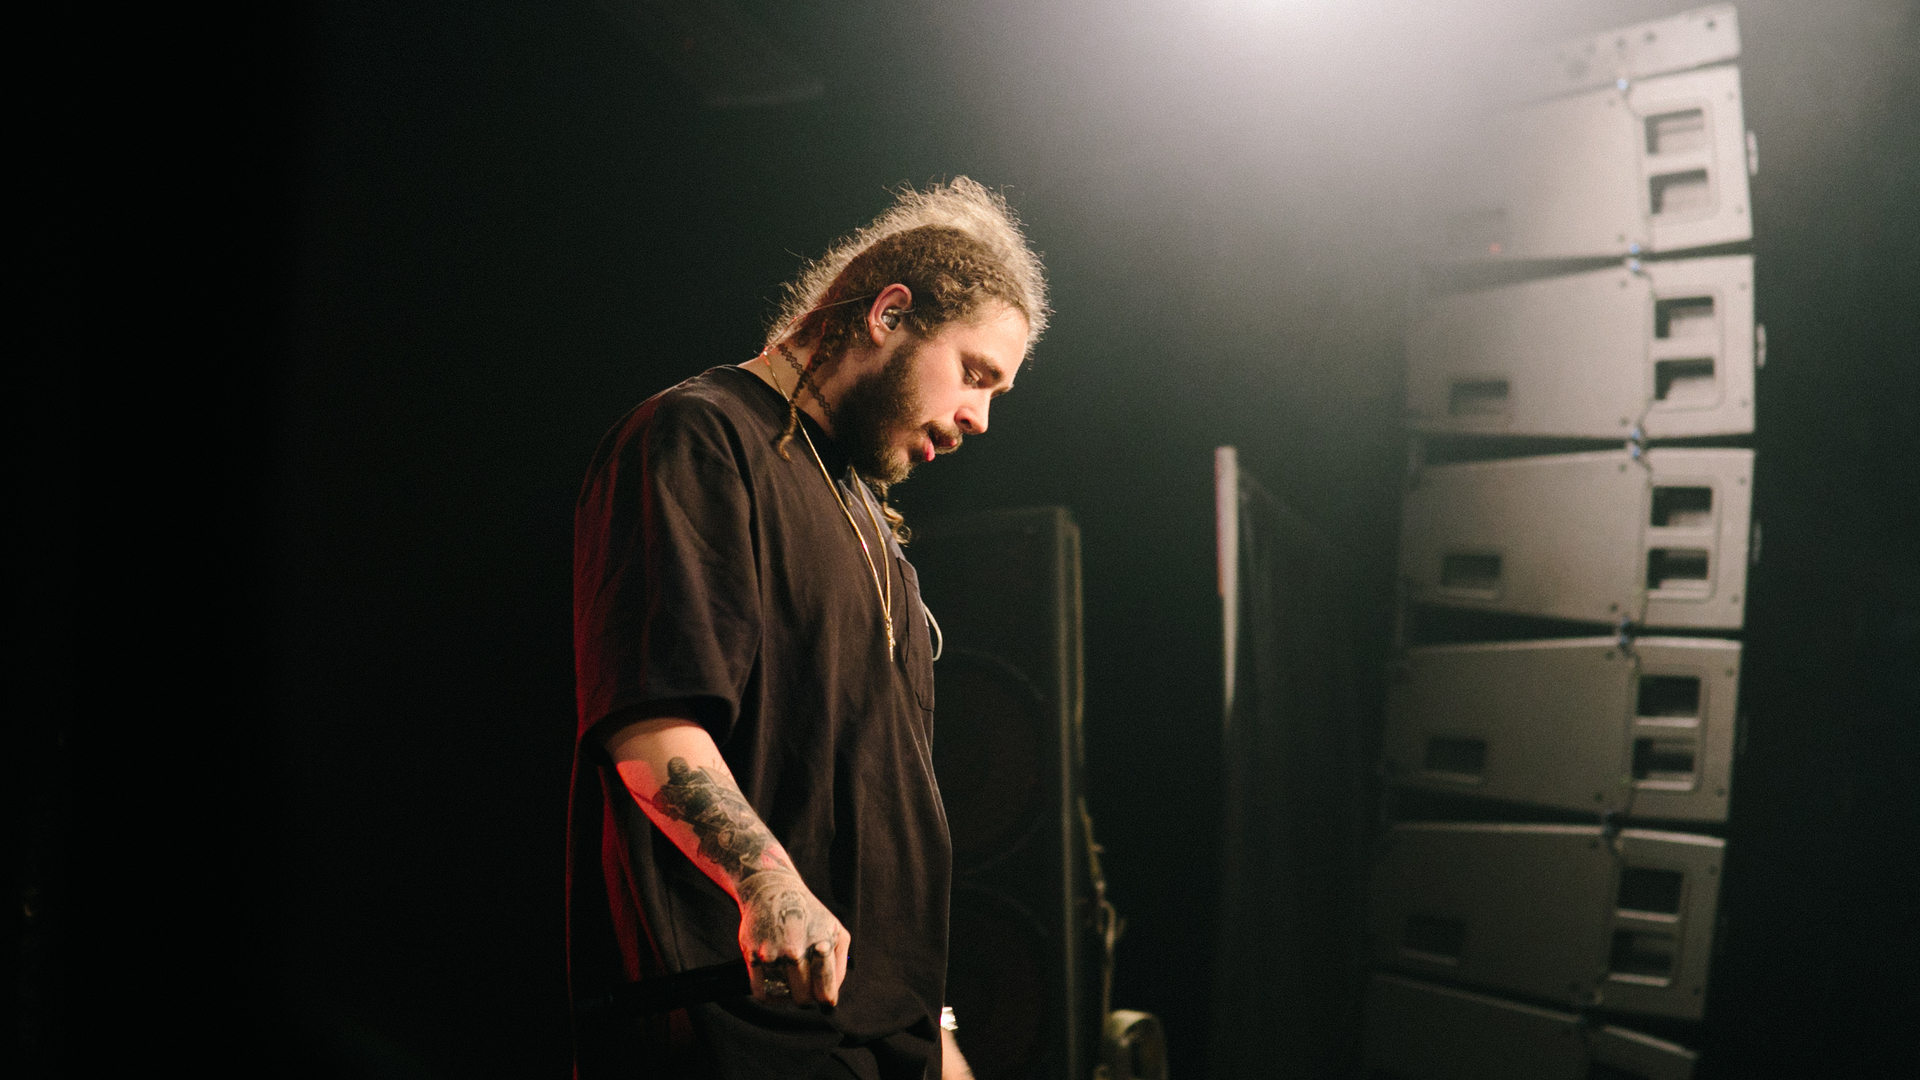 1920x1080 Post Malone Laptop Full Hd 1080p Hd 4k Wallpapers Images